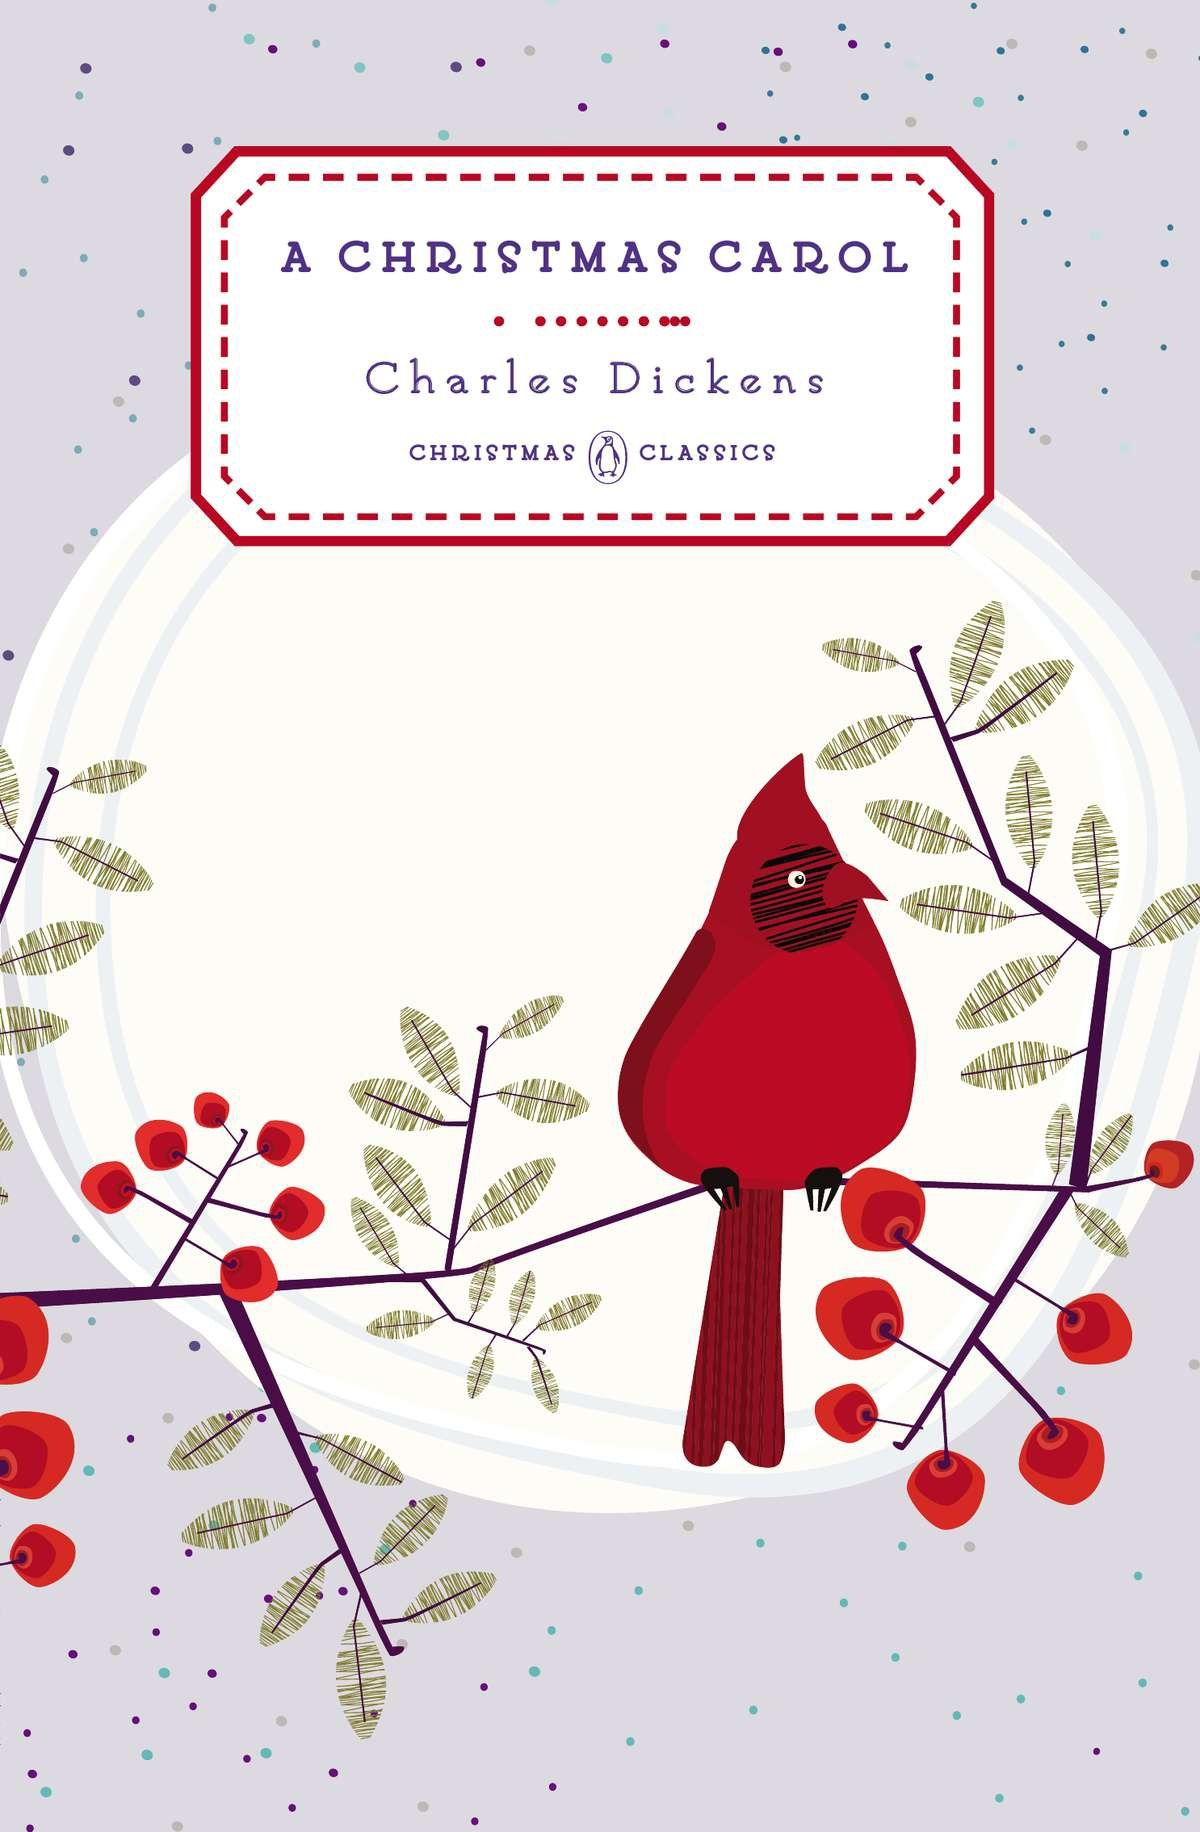 A Christmas Carol by Charles Dickens, ISBN: 9780143122494